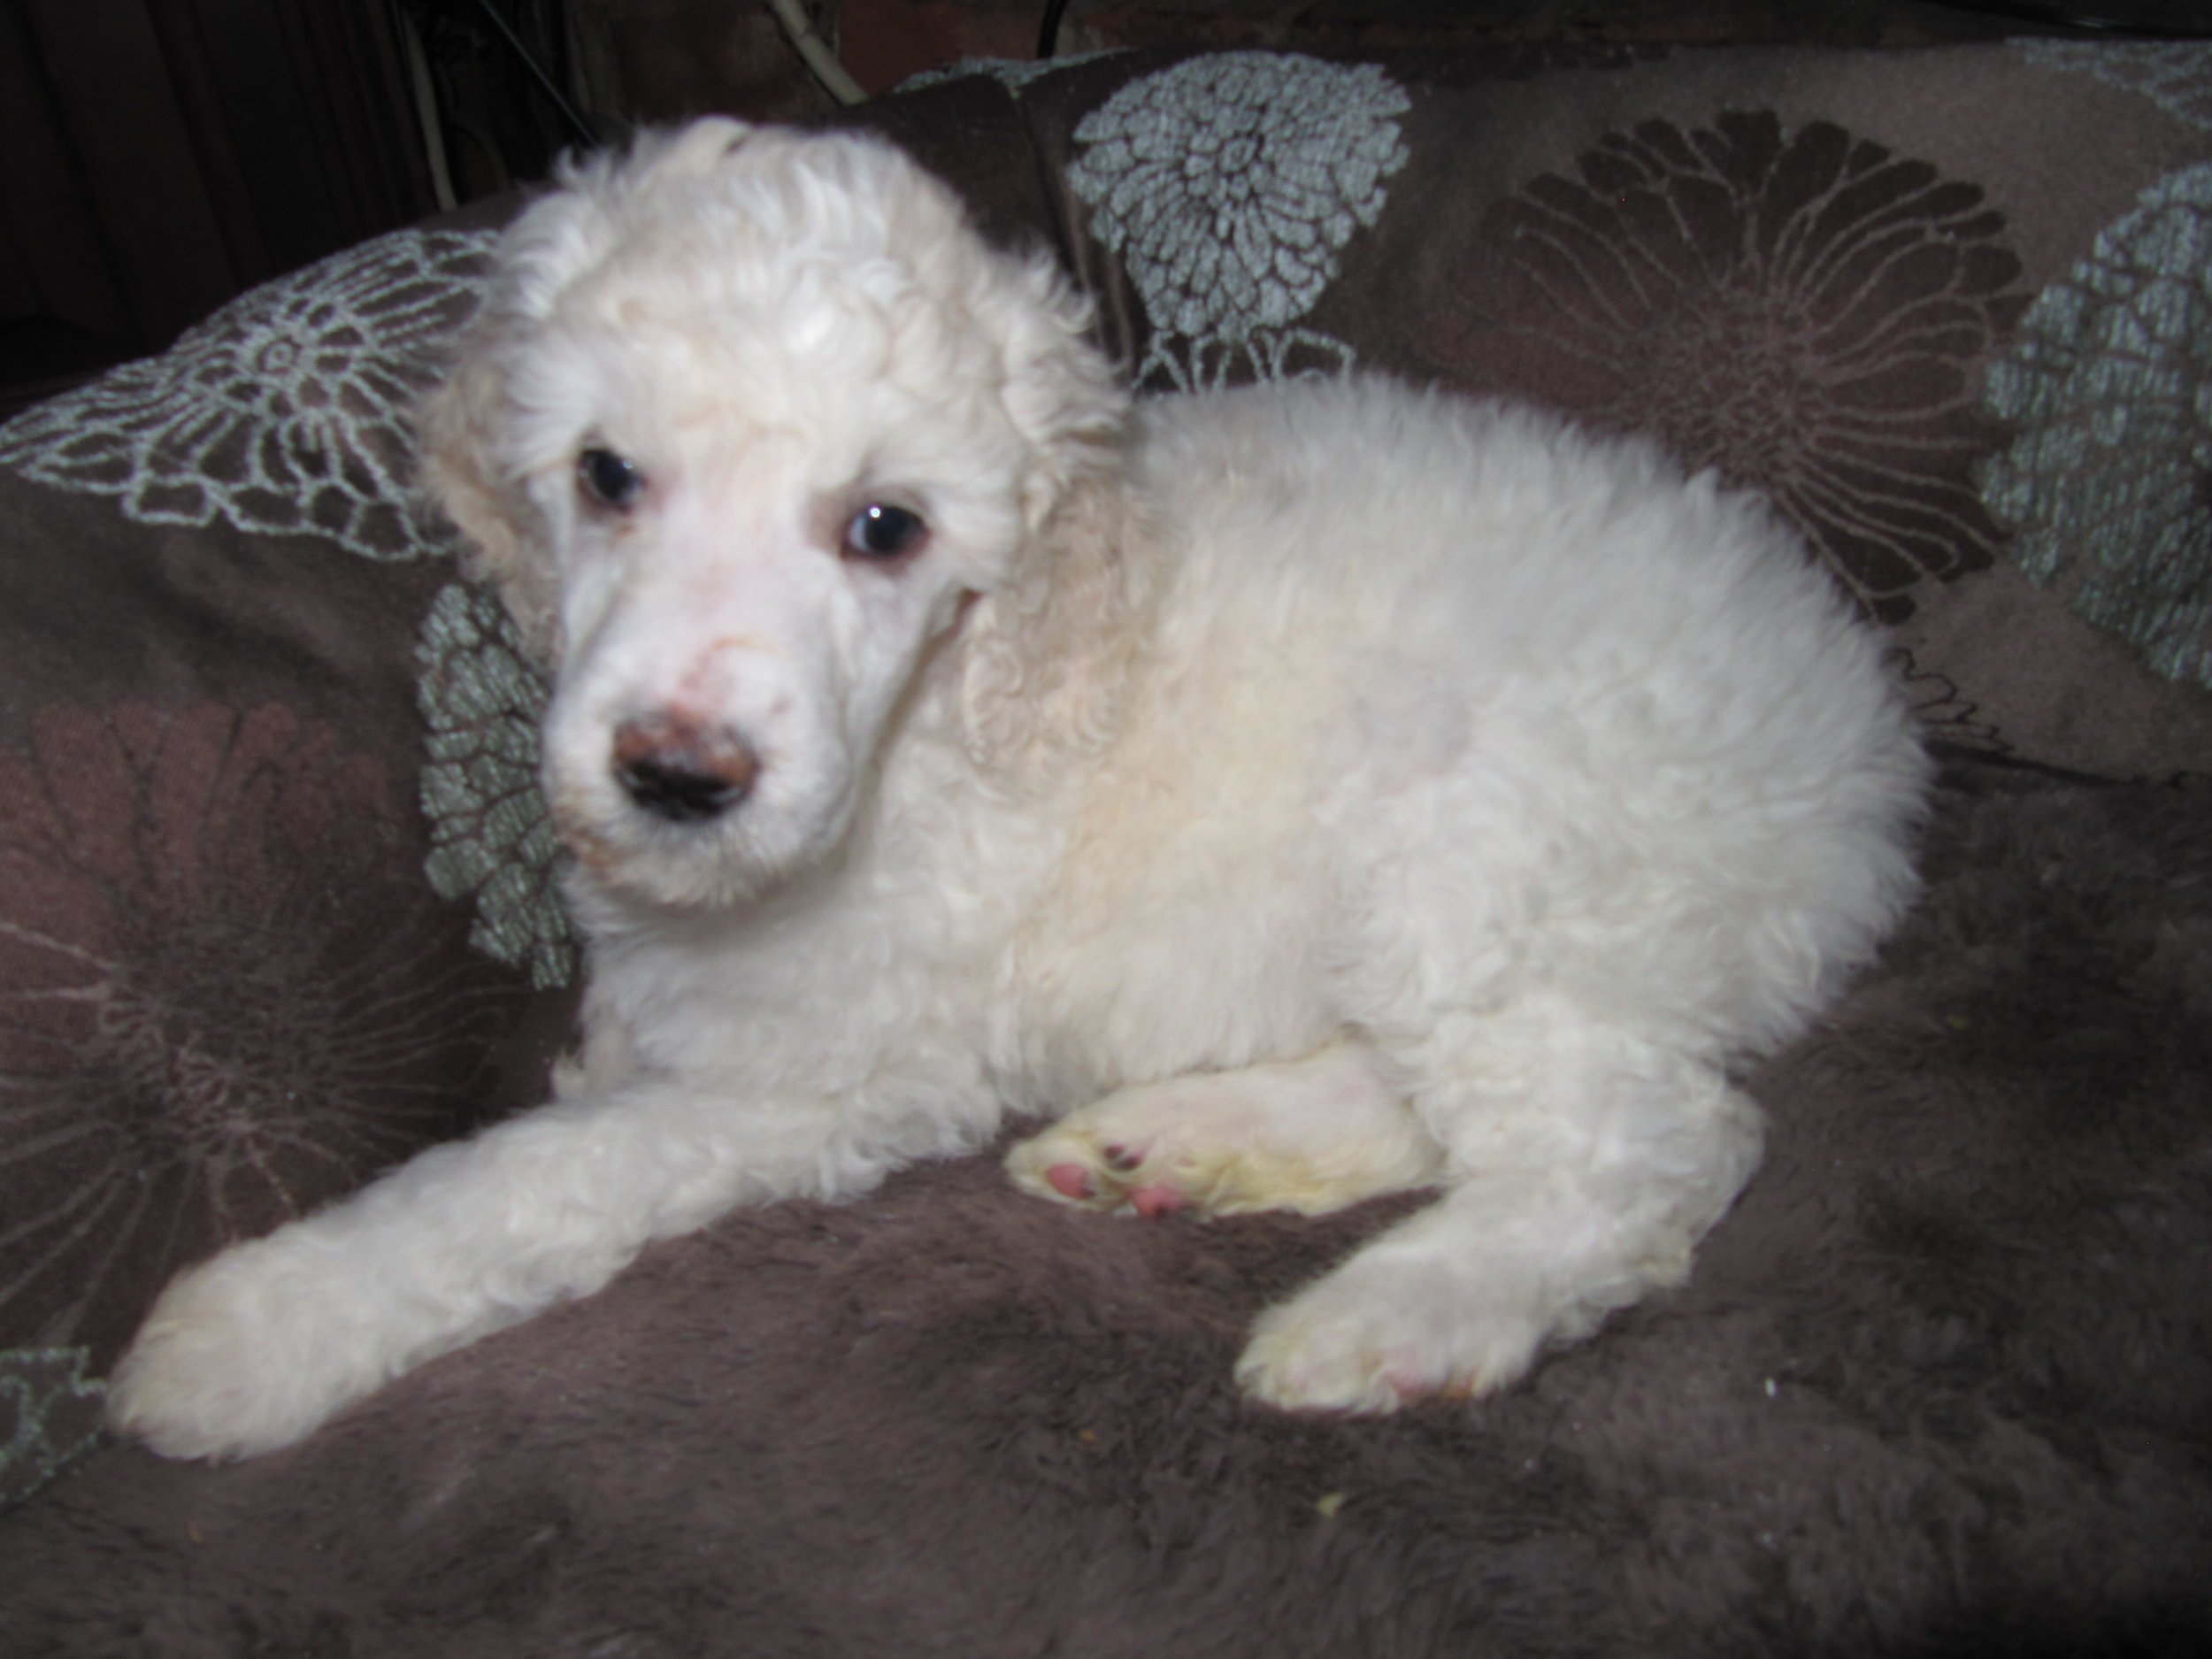 Sugaree's name is Vanna and she wiles in Las Vegas with her sister Eva and a whole passel of poodles